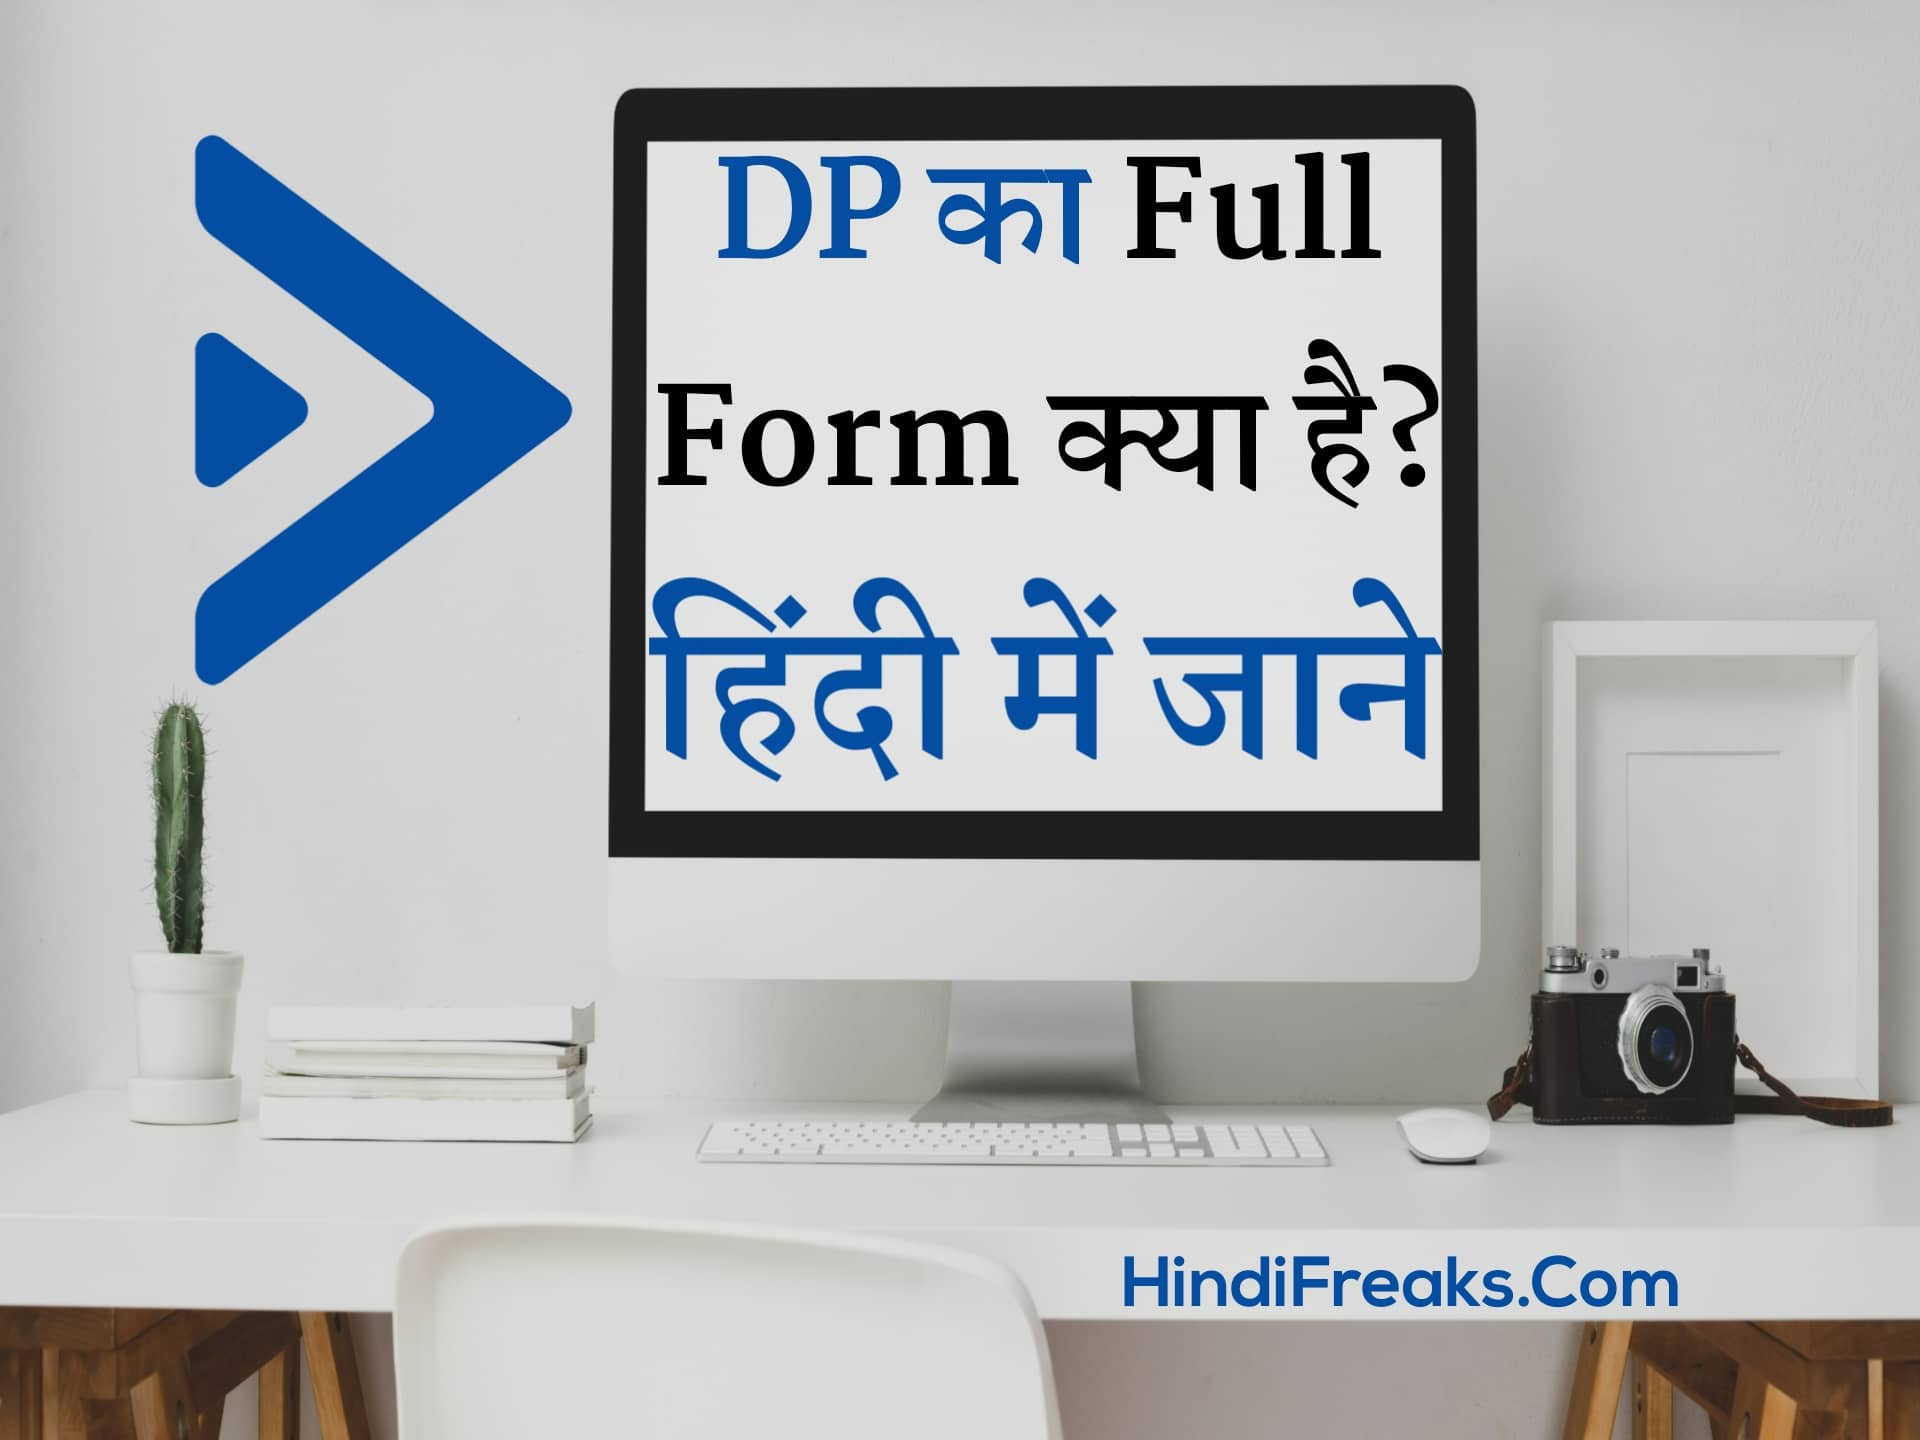 What-is-the-Full-Form-of-DP